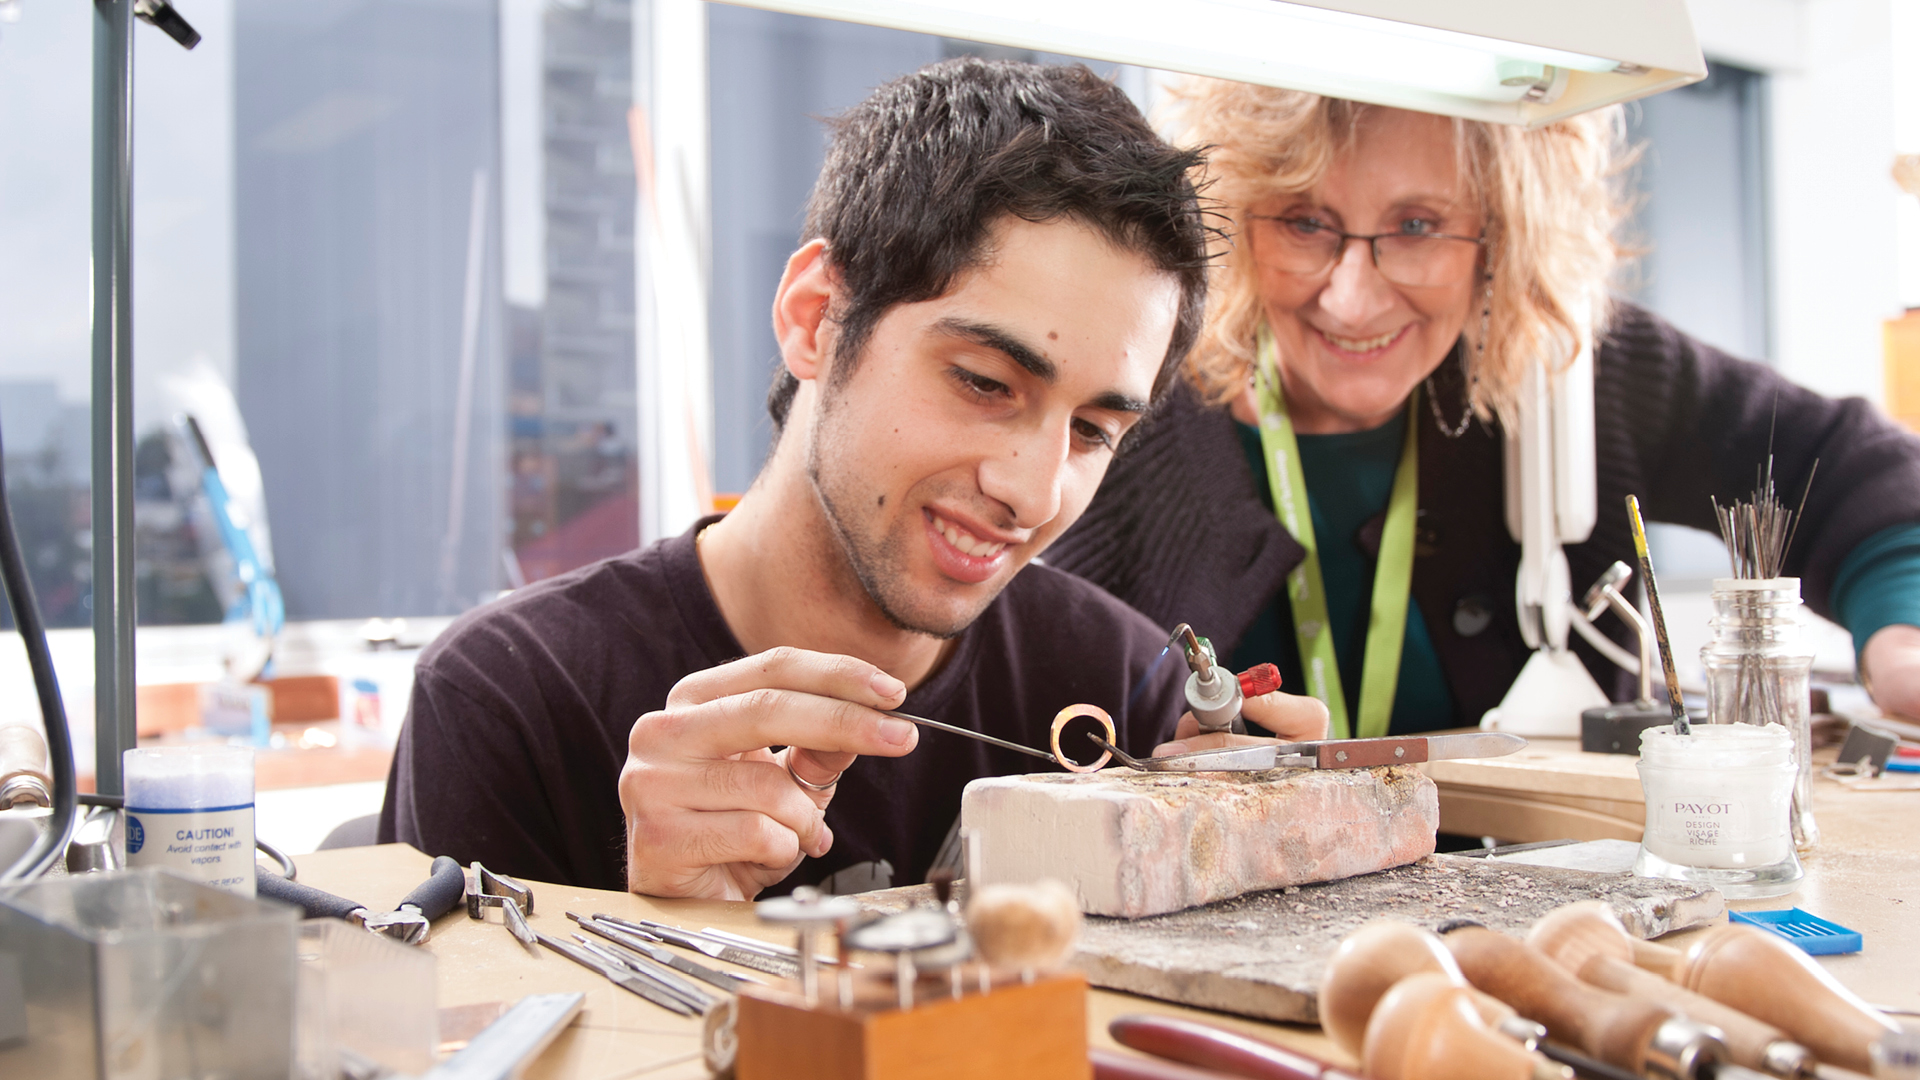 study jewellery manufacturing at tafe queensland